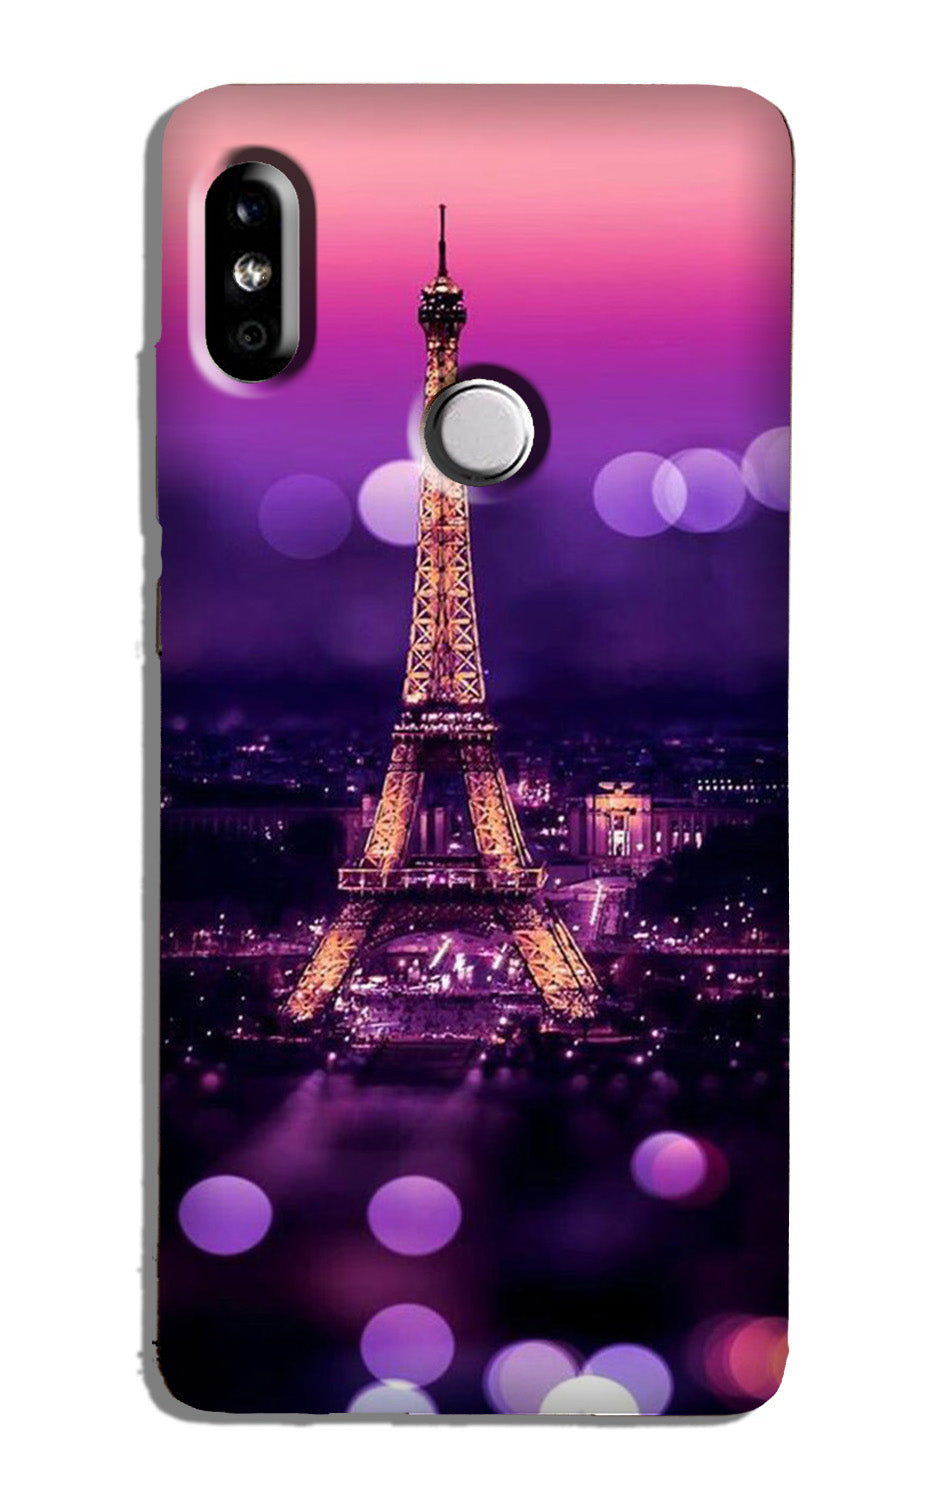 Eiffel Tower Case for Redmi Note 6 Pro